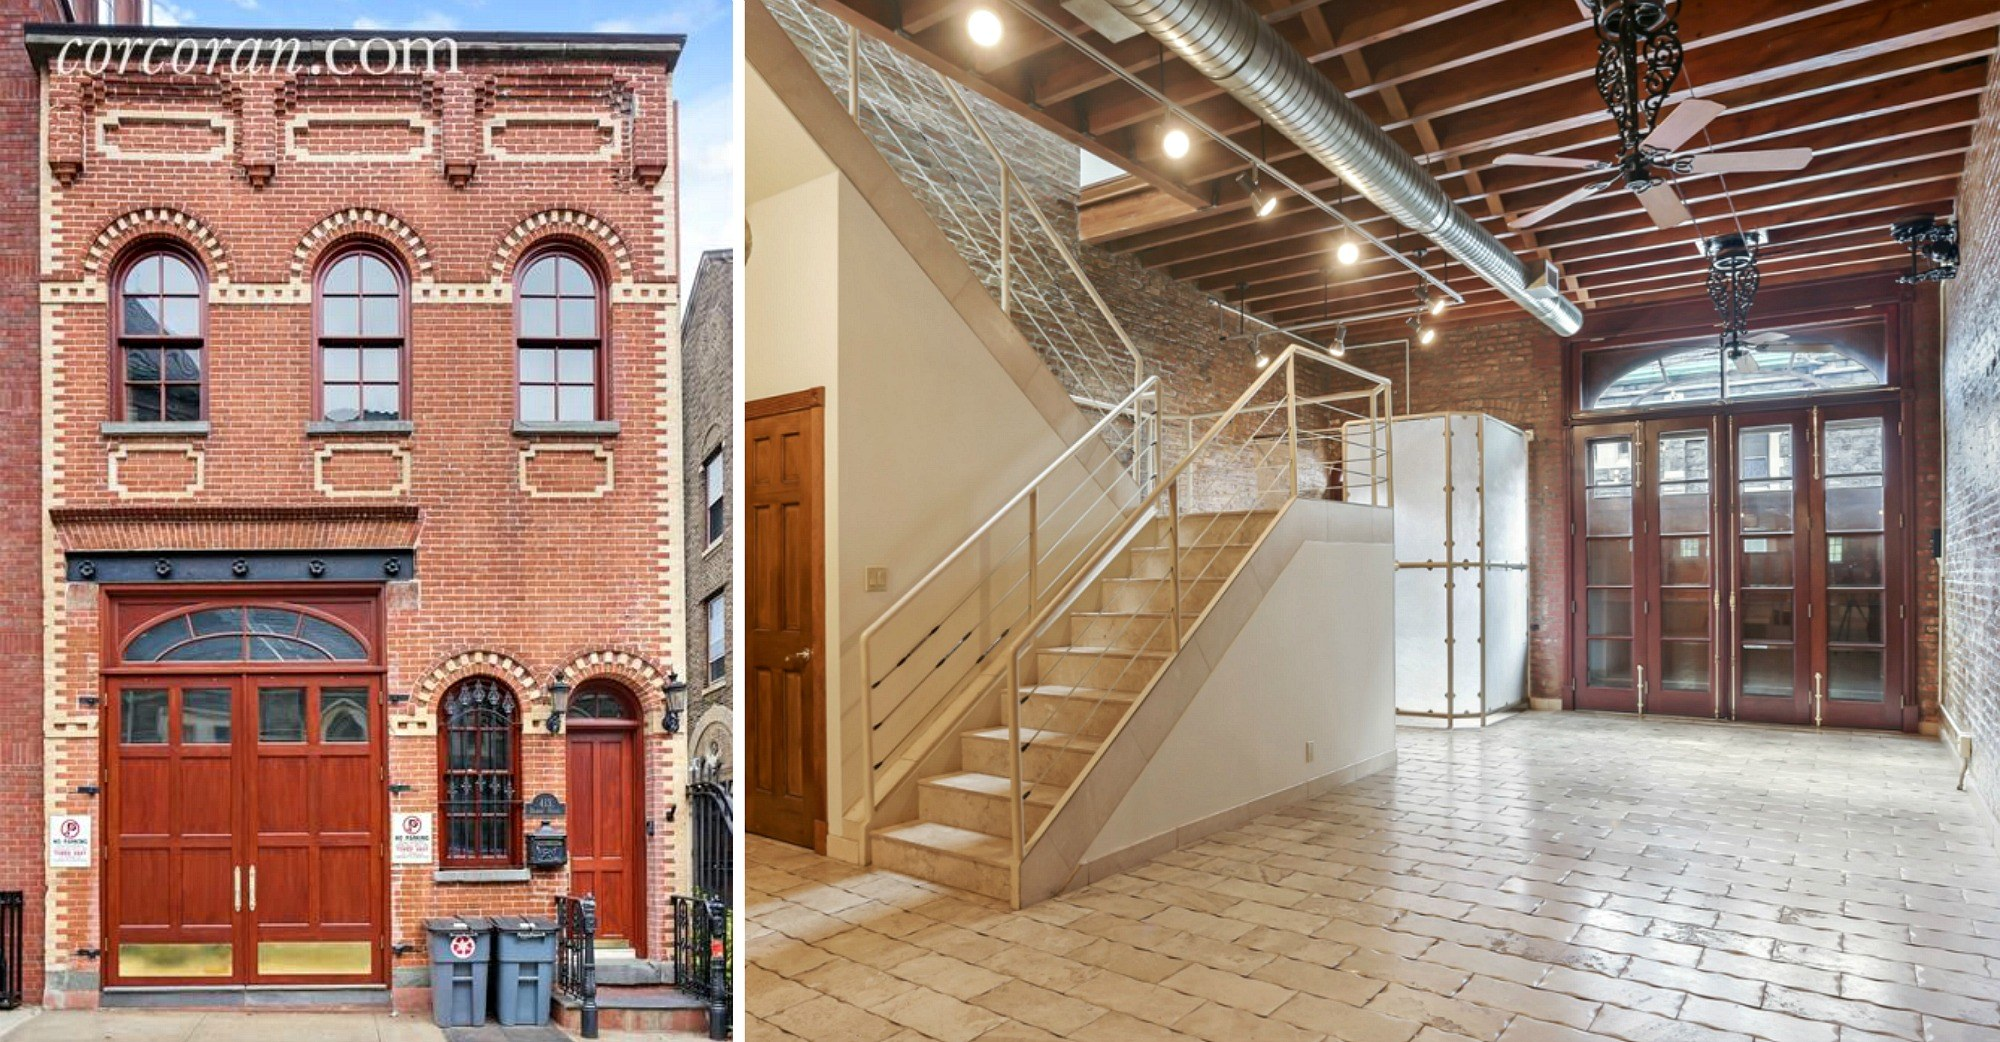 Rent this historicmeetsmodern Cobble Hill carriage house for